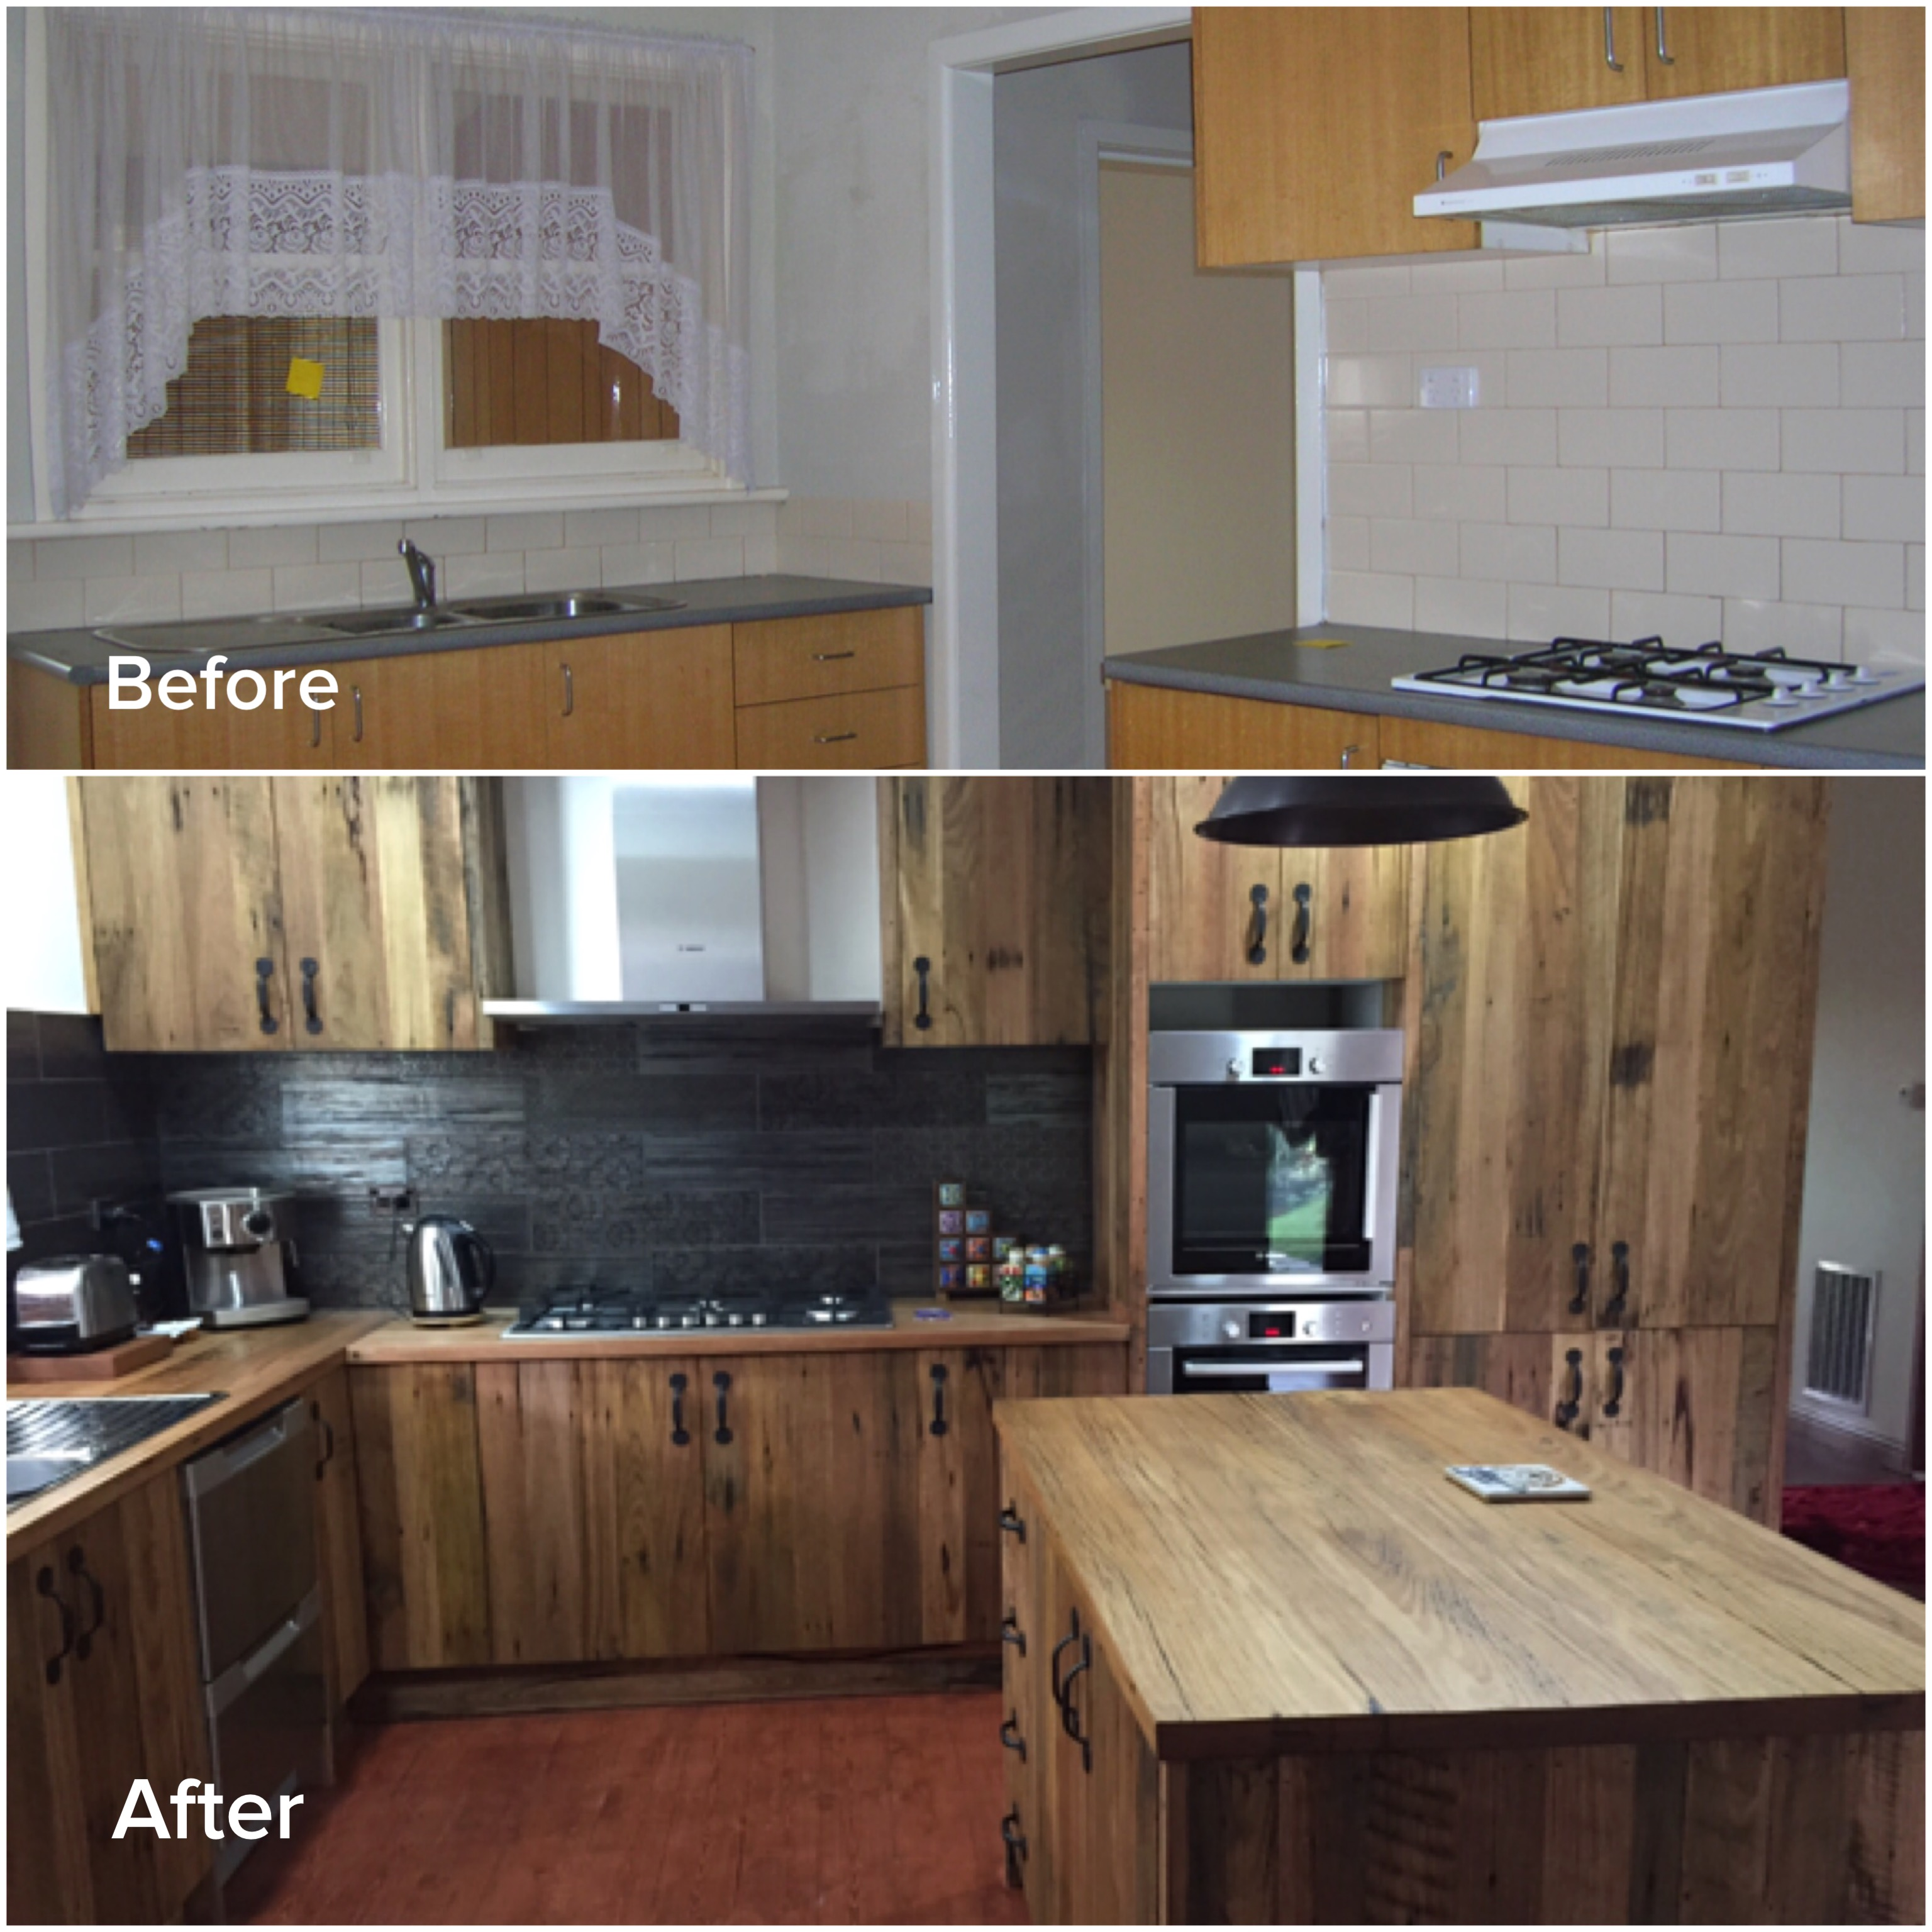 kinsale - kitchen before after